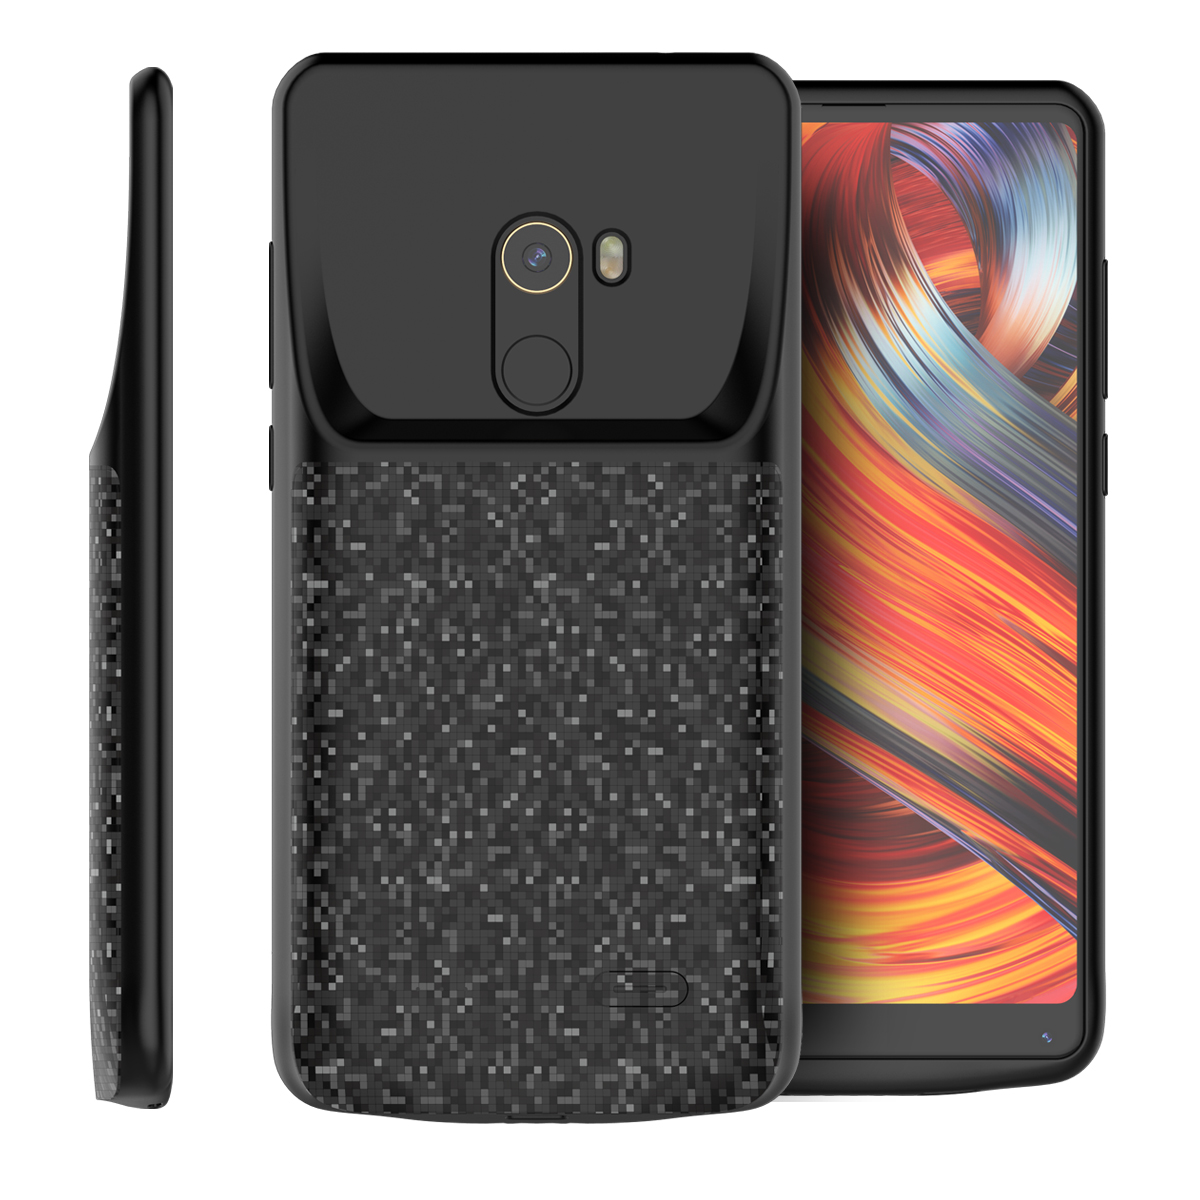 For Xiaomi Mi Mix 2 Battery Charger Case 4700mAh Power Bank Charging Case External Backup Charger Case For Xiaomi Mi Mix 2 Cover|Battery Charger Cases| |  - title=